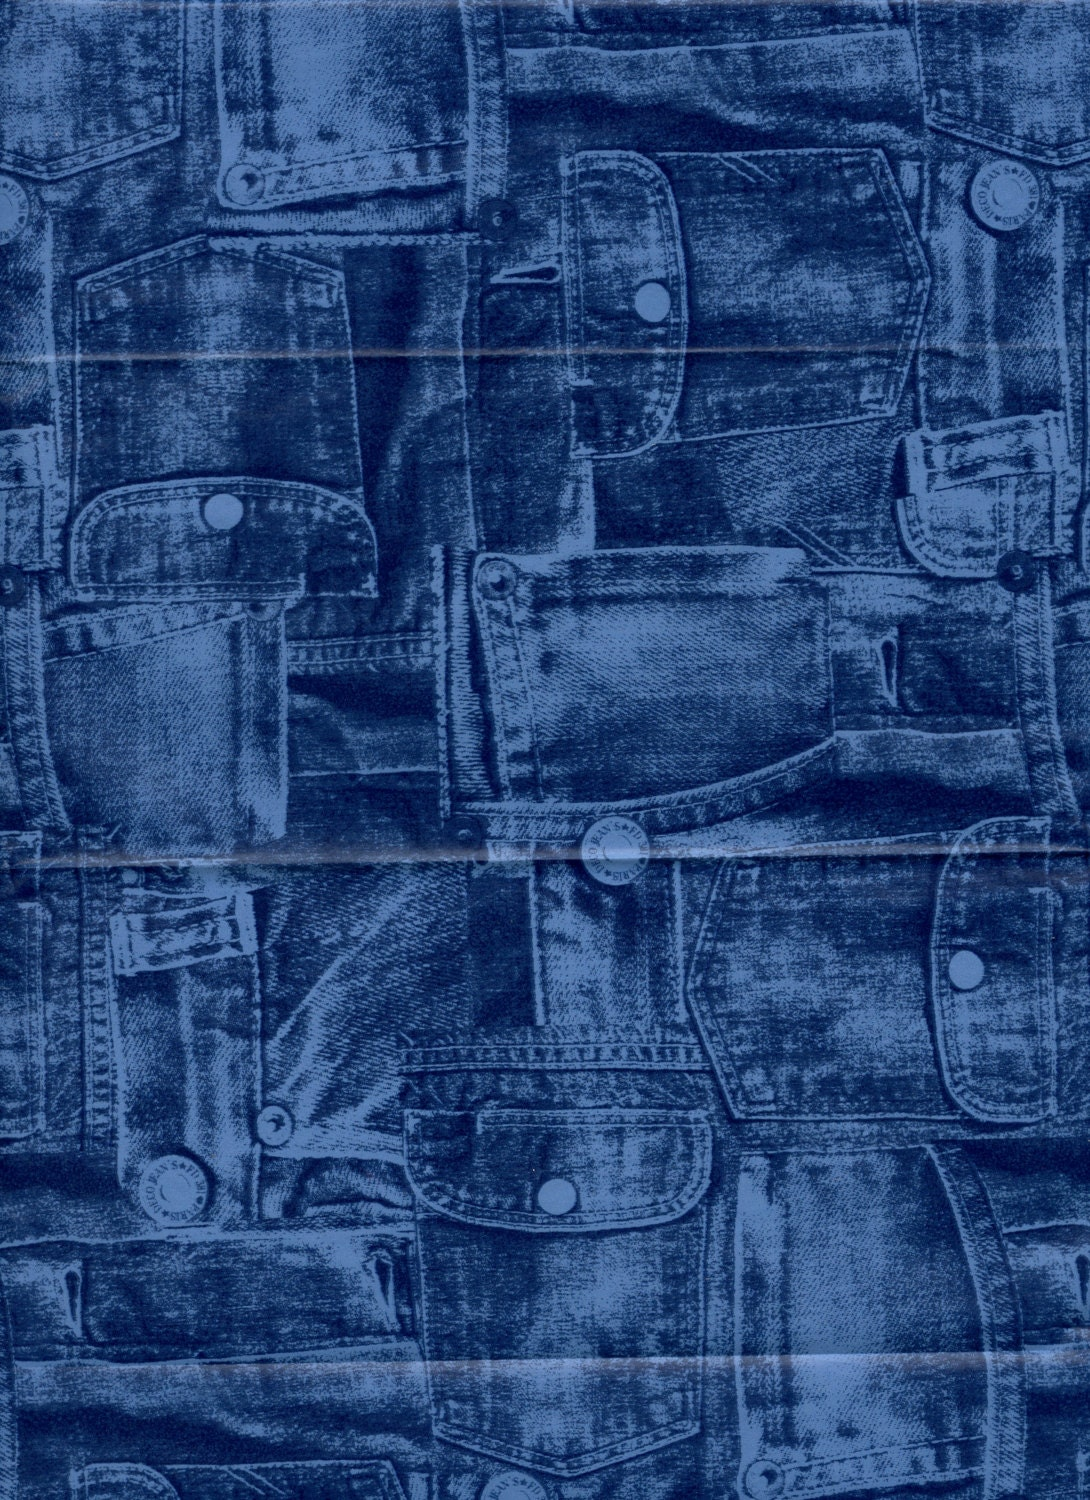 paper and denim Wrap up your gifts with denim wrapping paper from zazzle great for all occasions choose from thousands of designs or create your own.